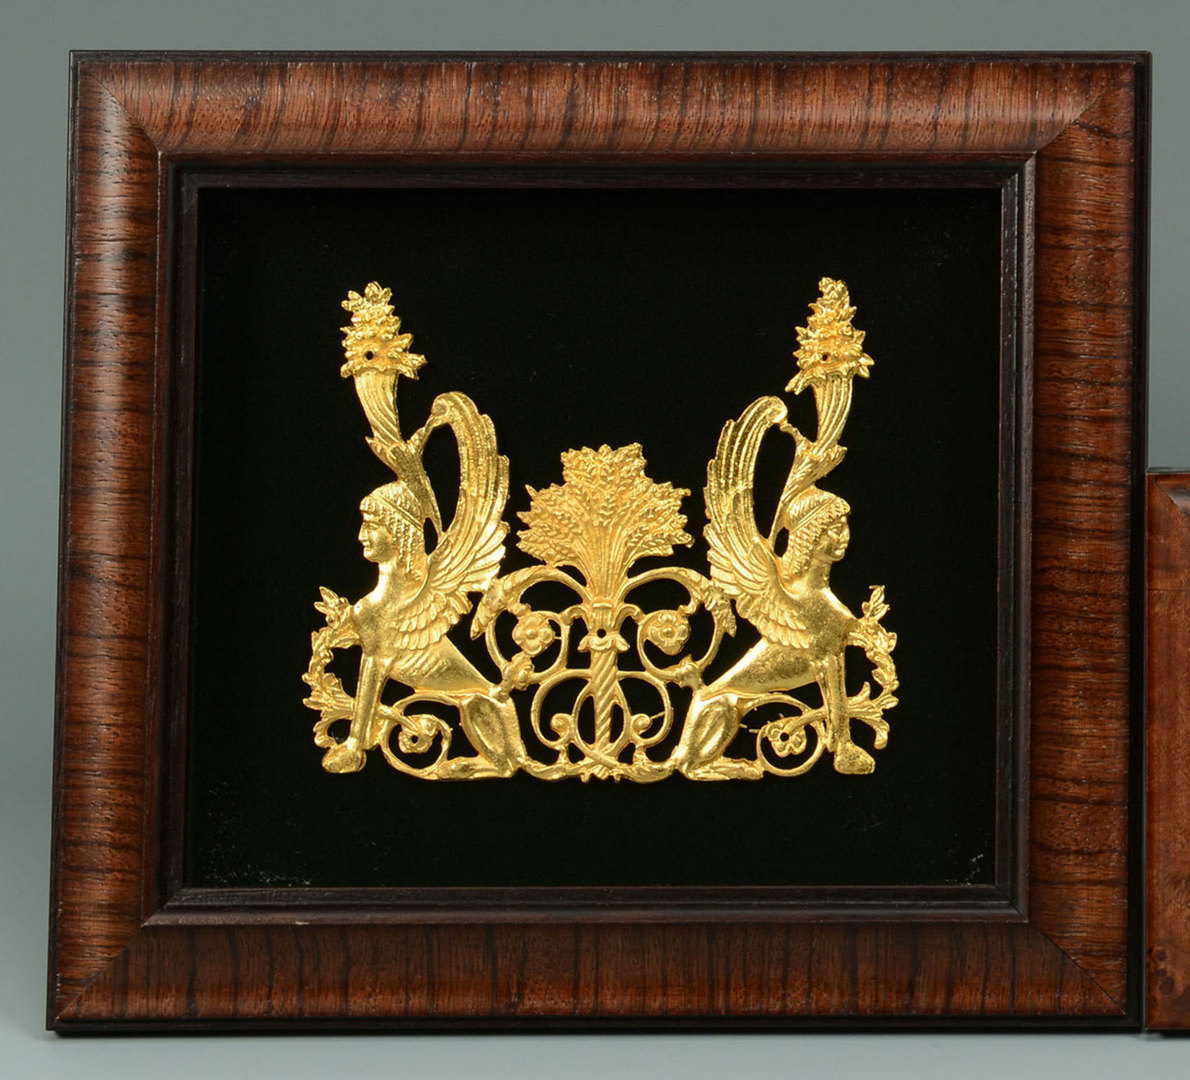 Lot 164: Group of 9 Framed Gilt Ornament Plaques plus 2 Fre